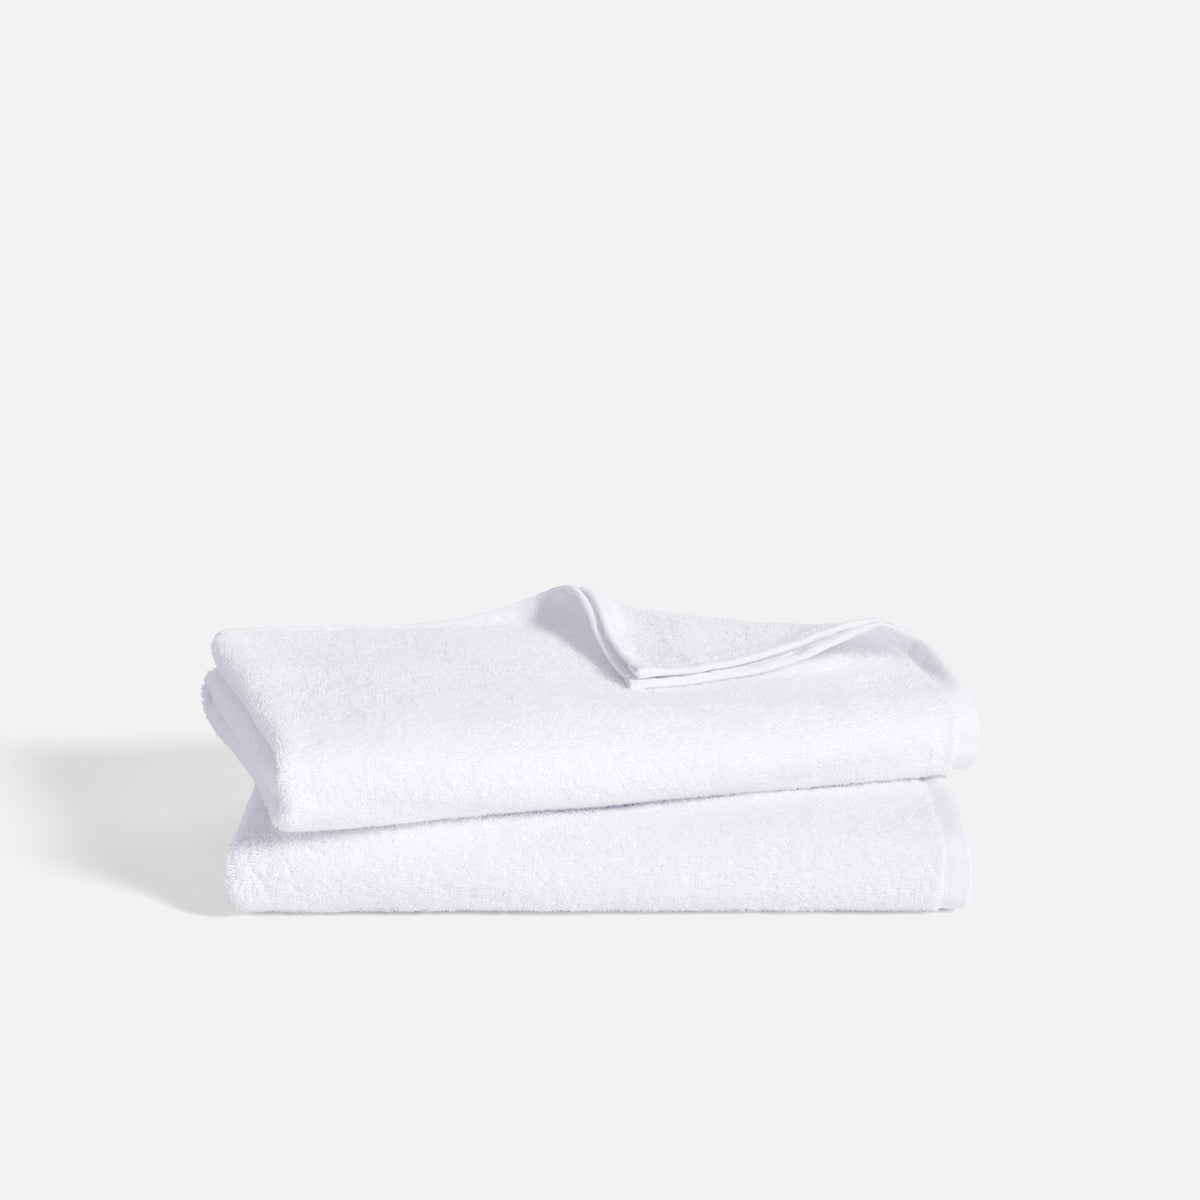 Ultralight Towel Move-In Bundle / White